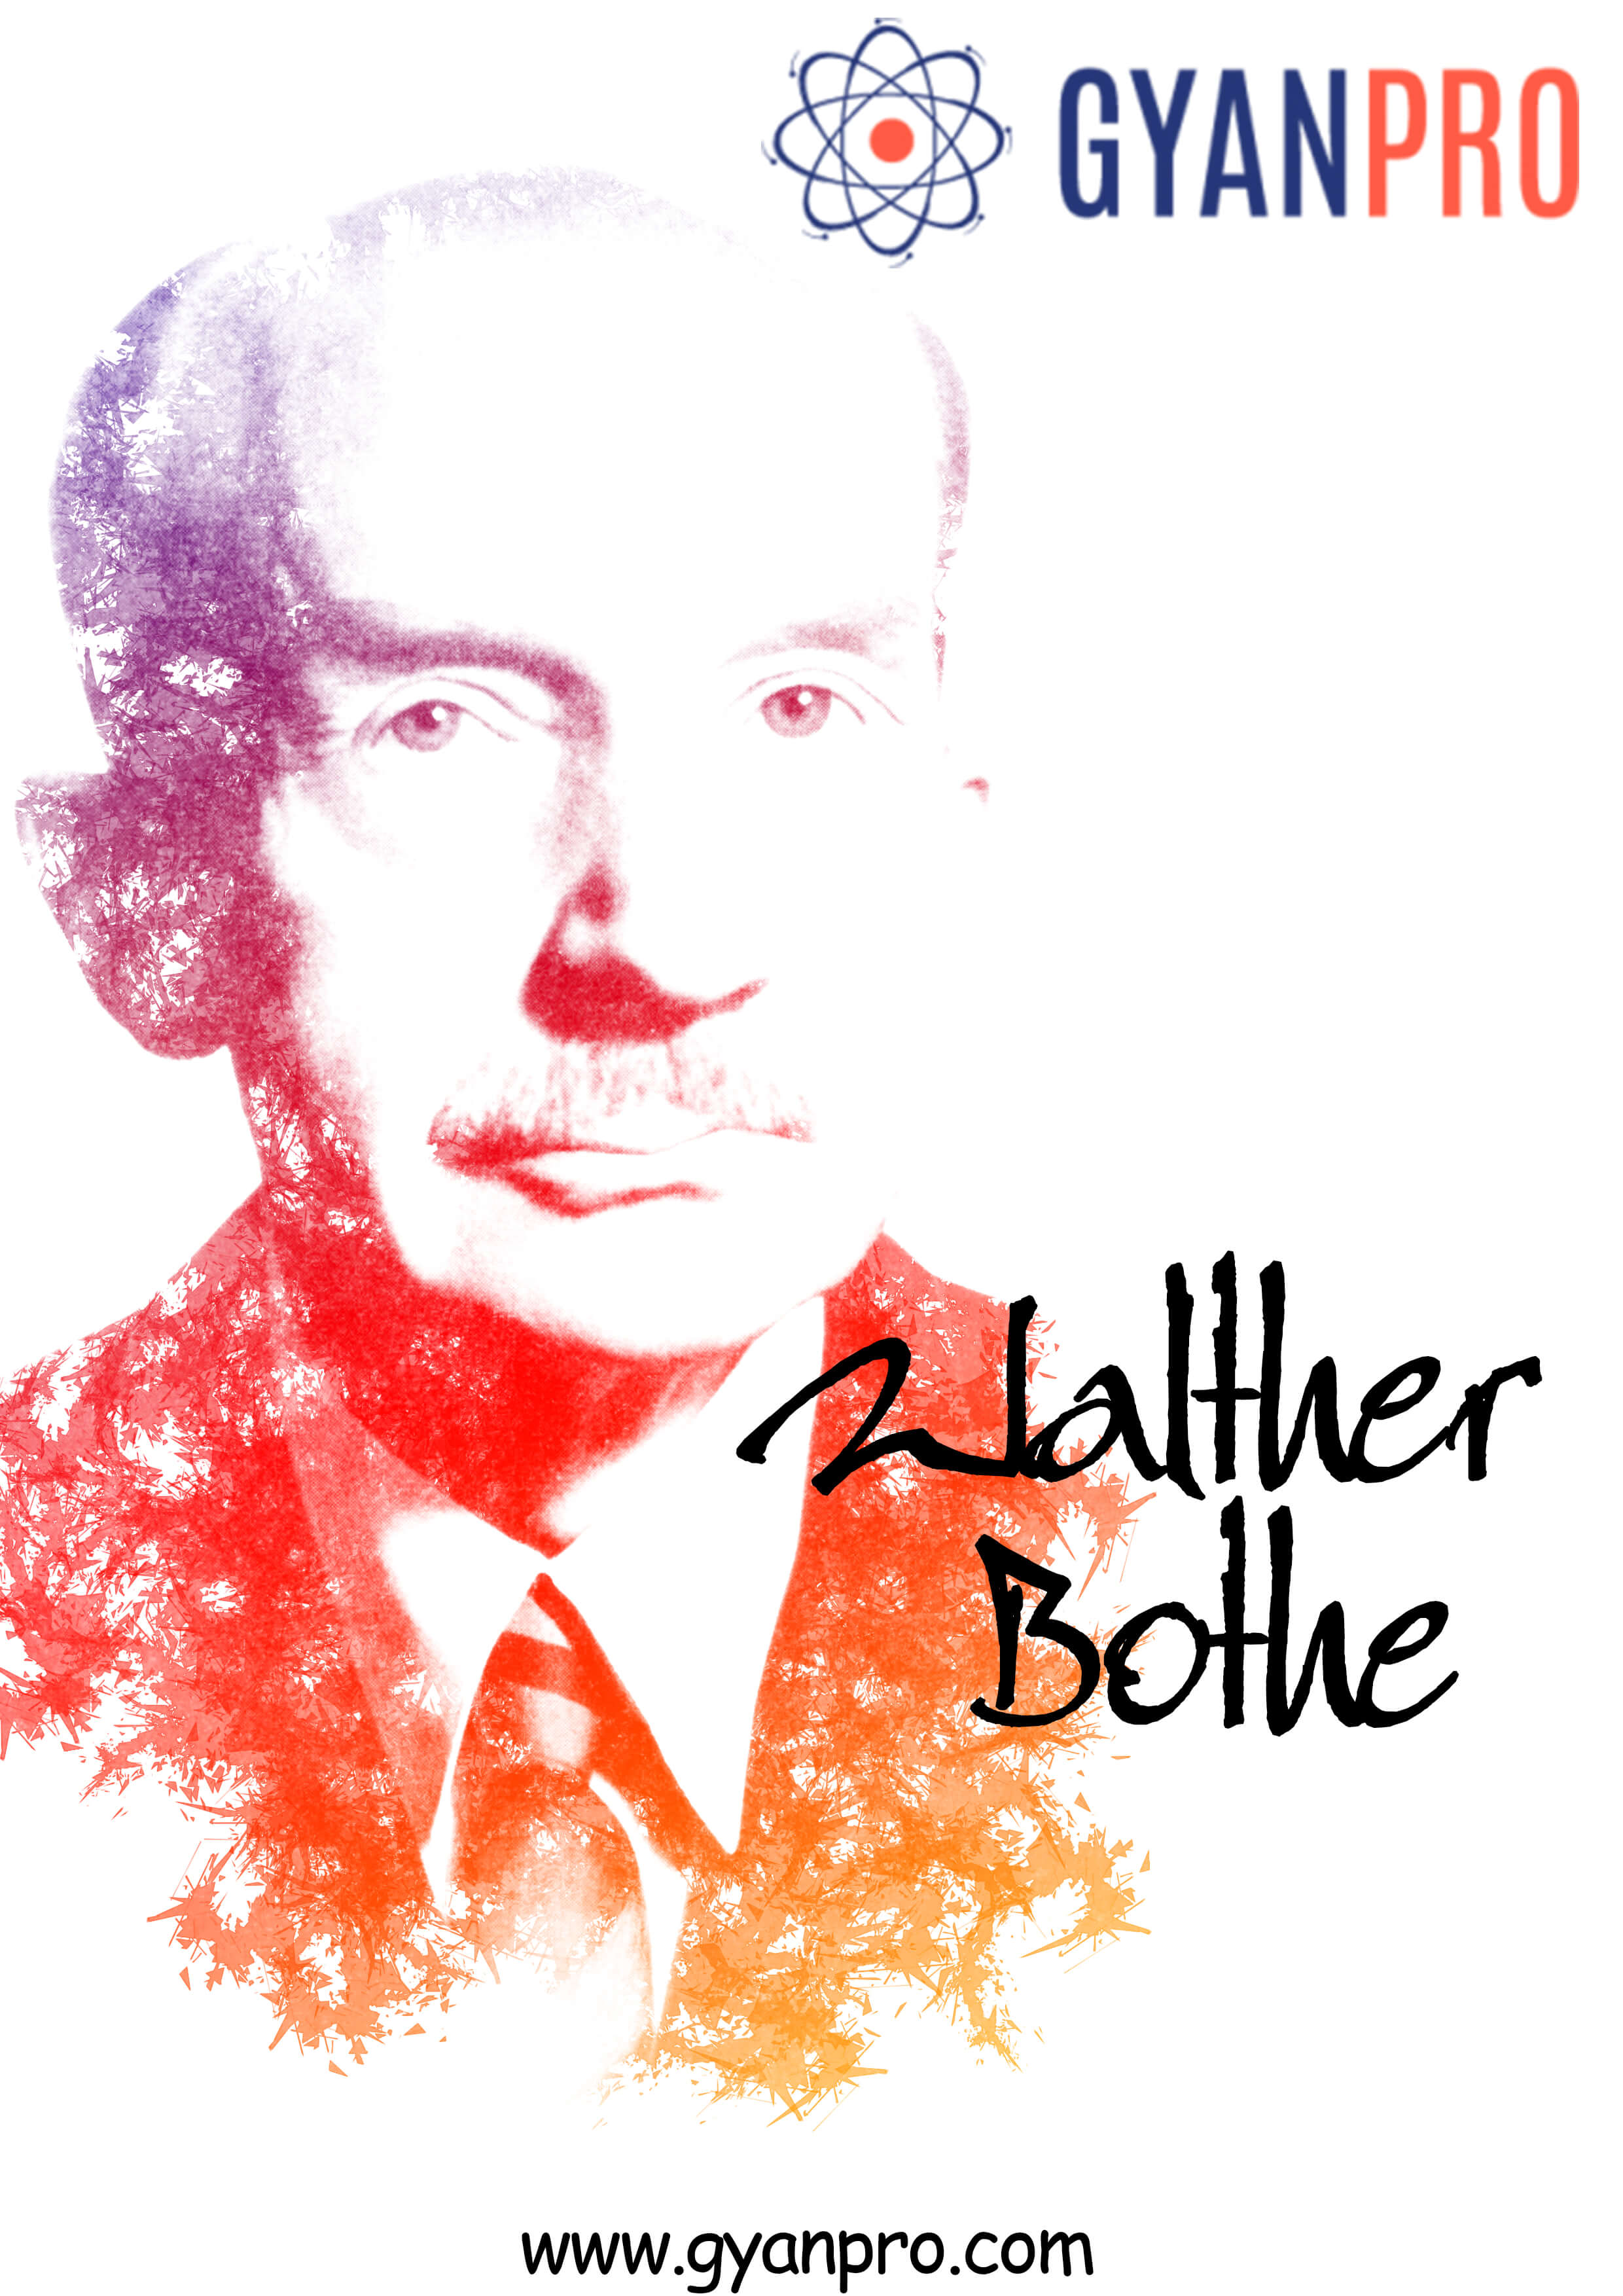 walther bothe_gyanpro